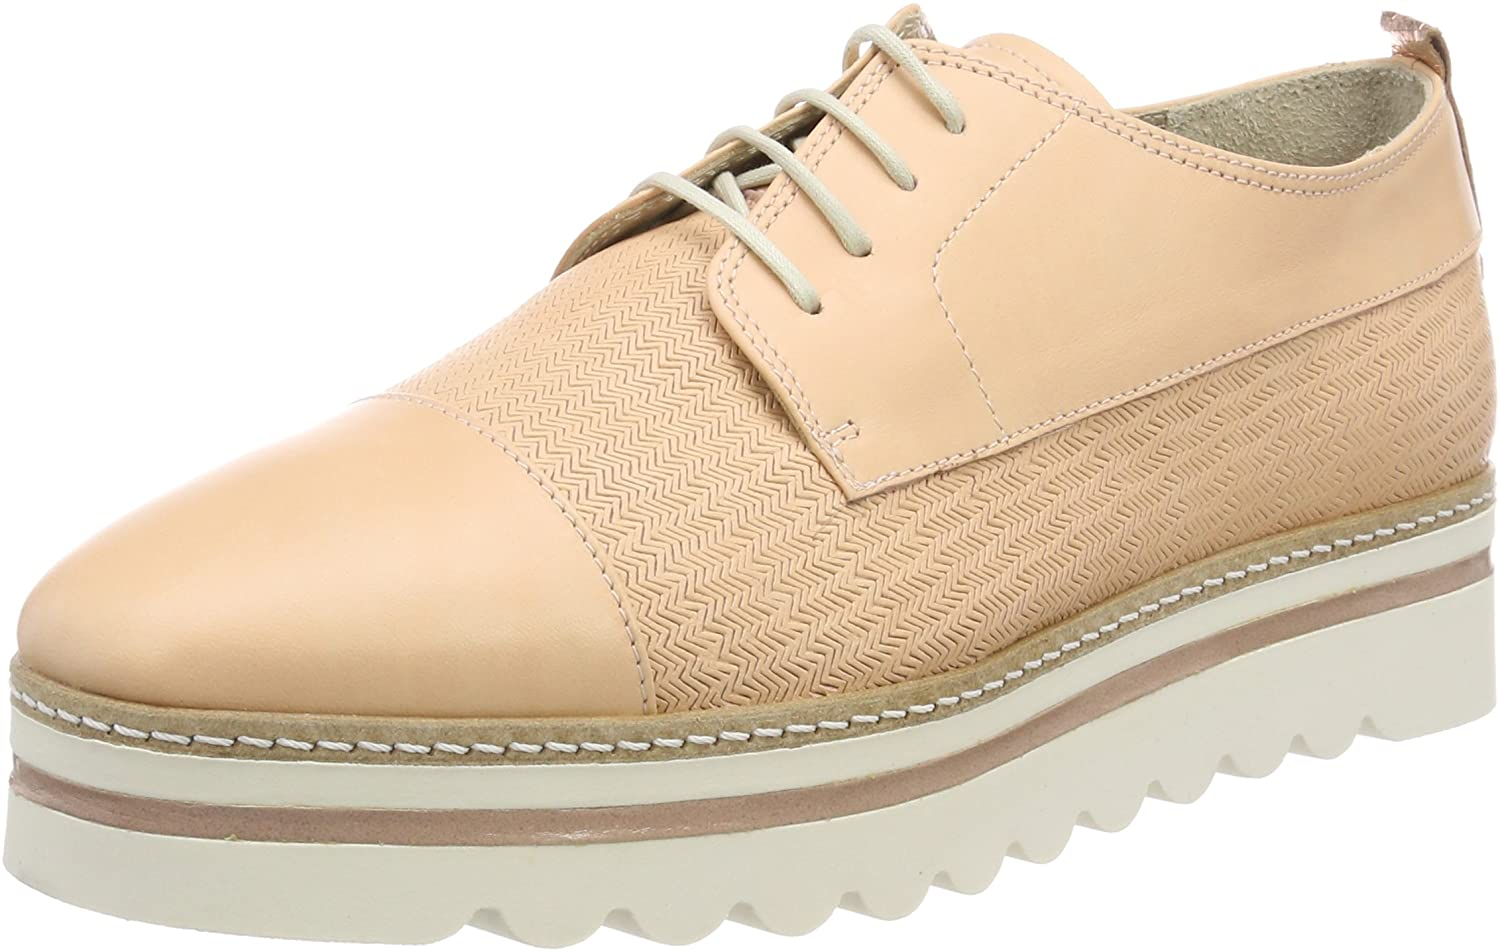 Marc O'Polo Women's Lace-Up Oxfords